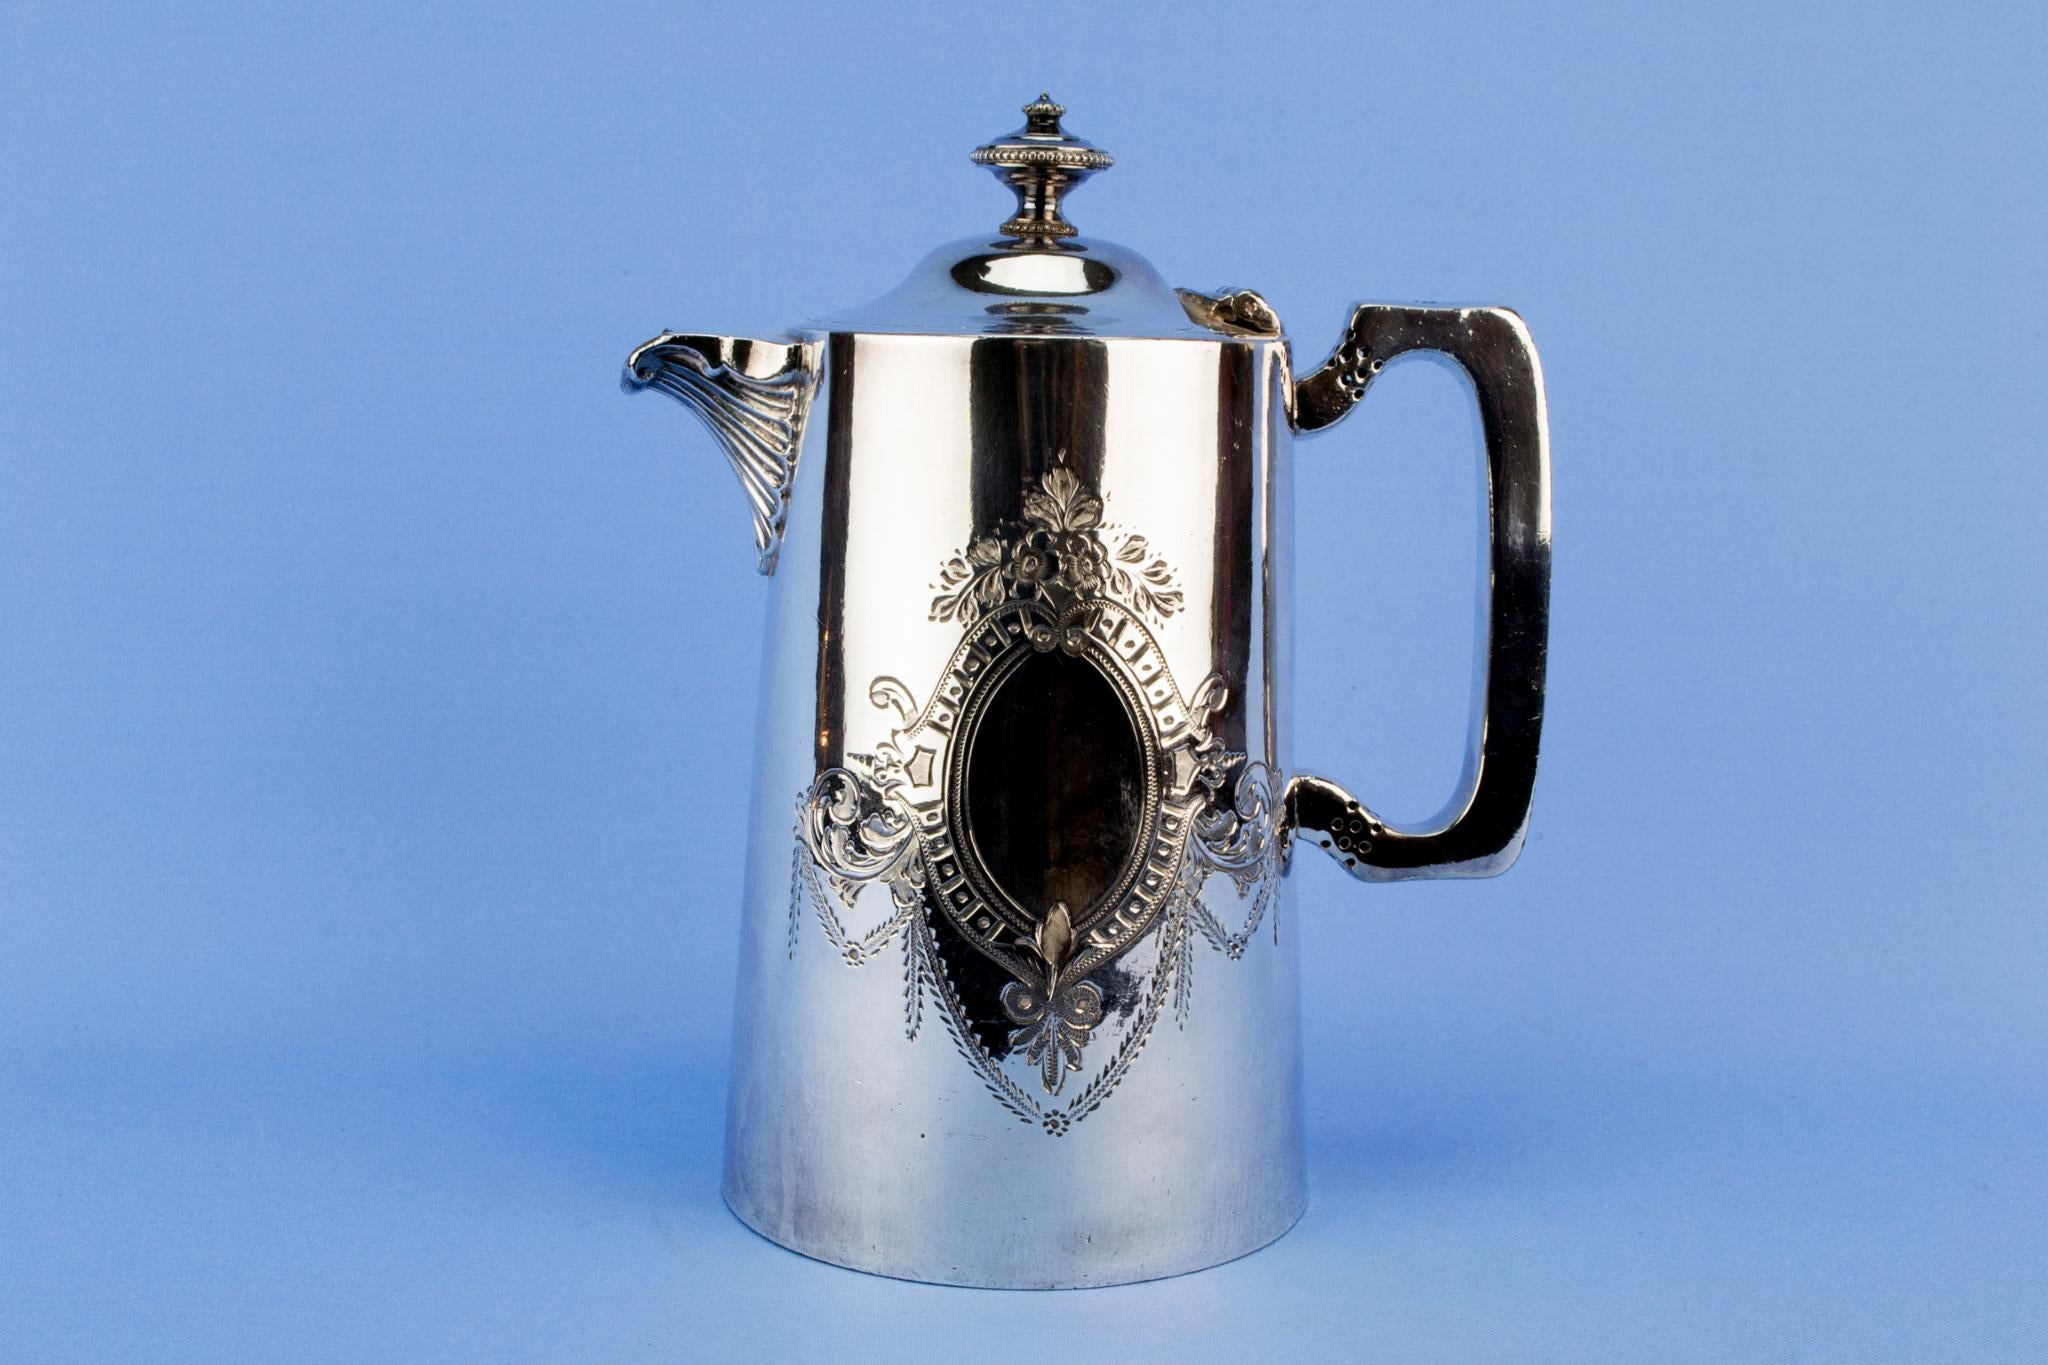 Walker & Hall silver plated coffee pot, English late 19th century